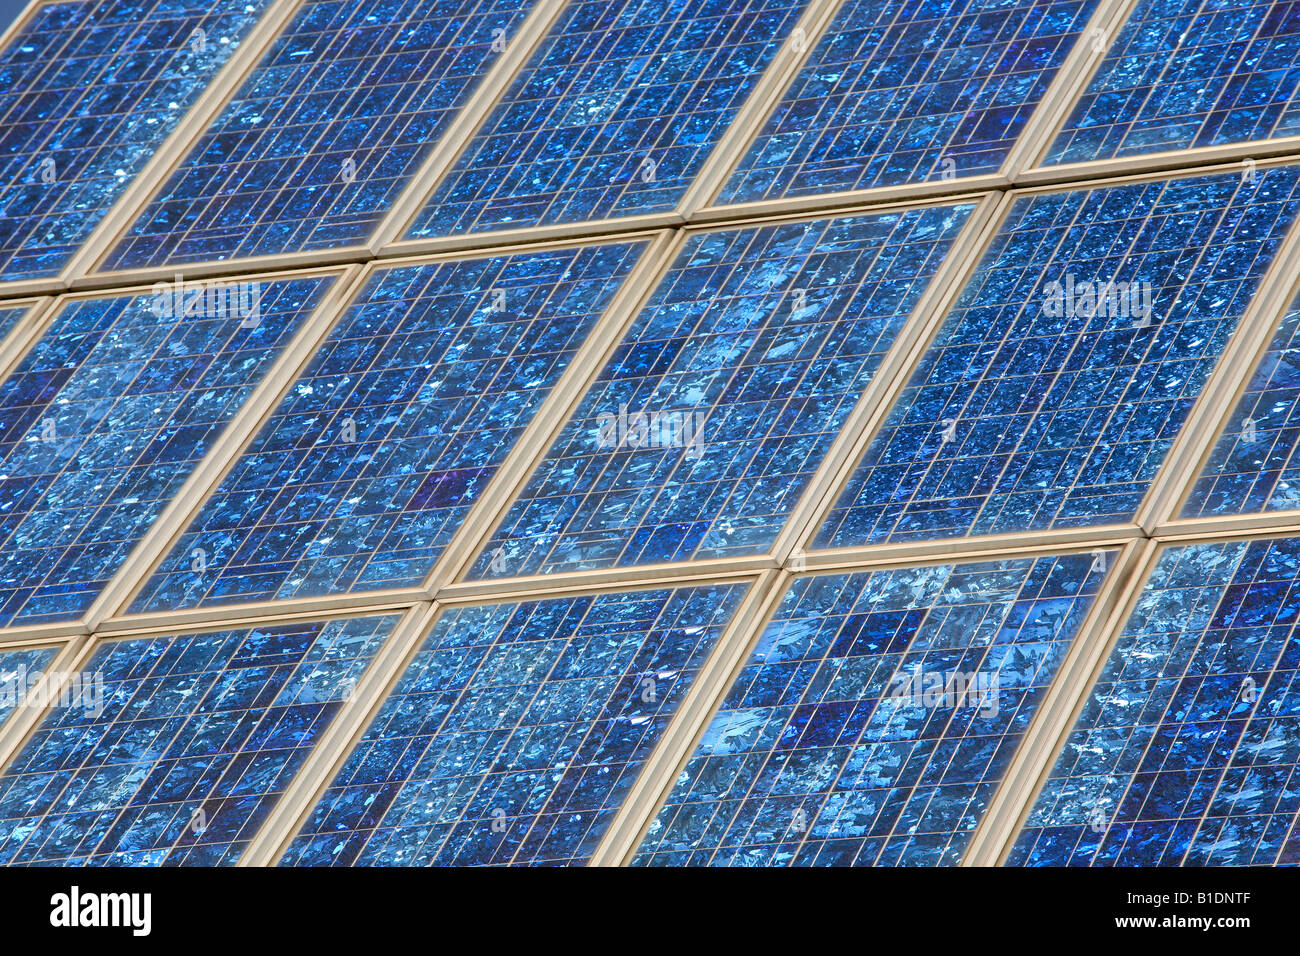 panel of a solar power plant - Stock Image